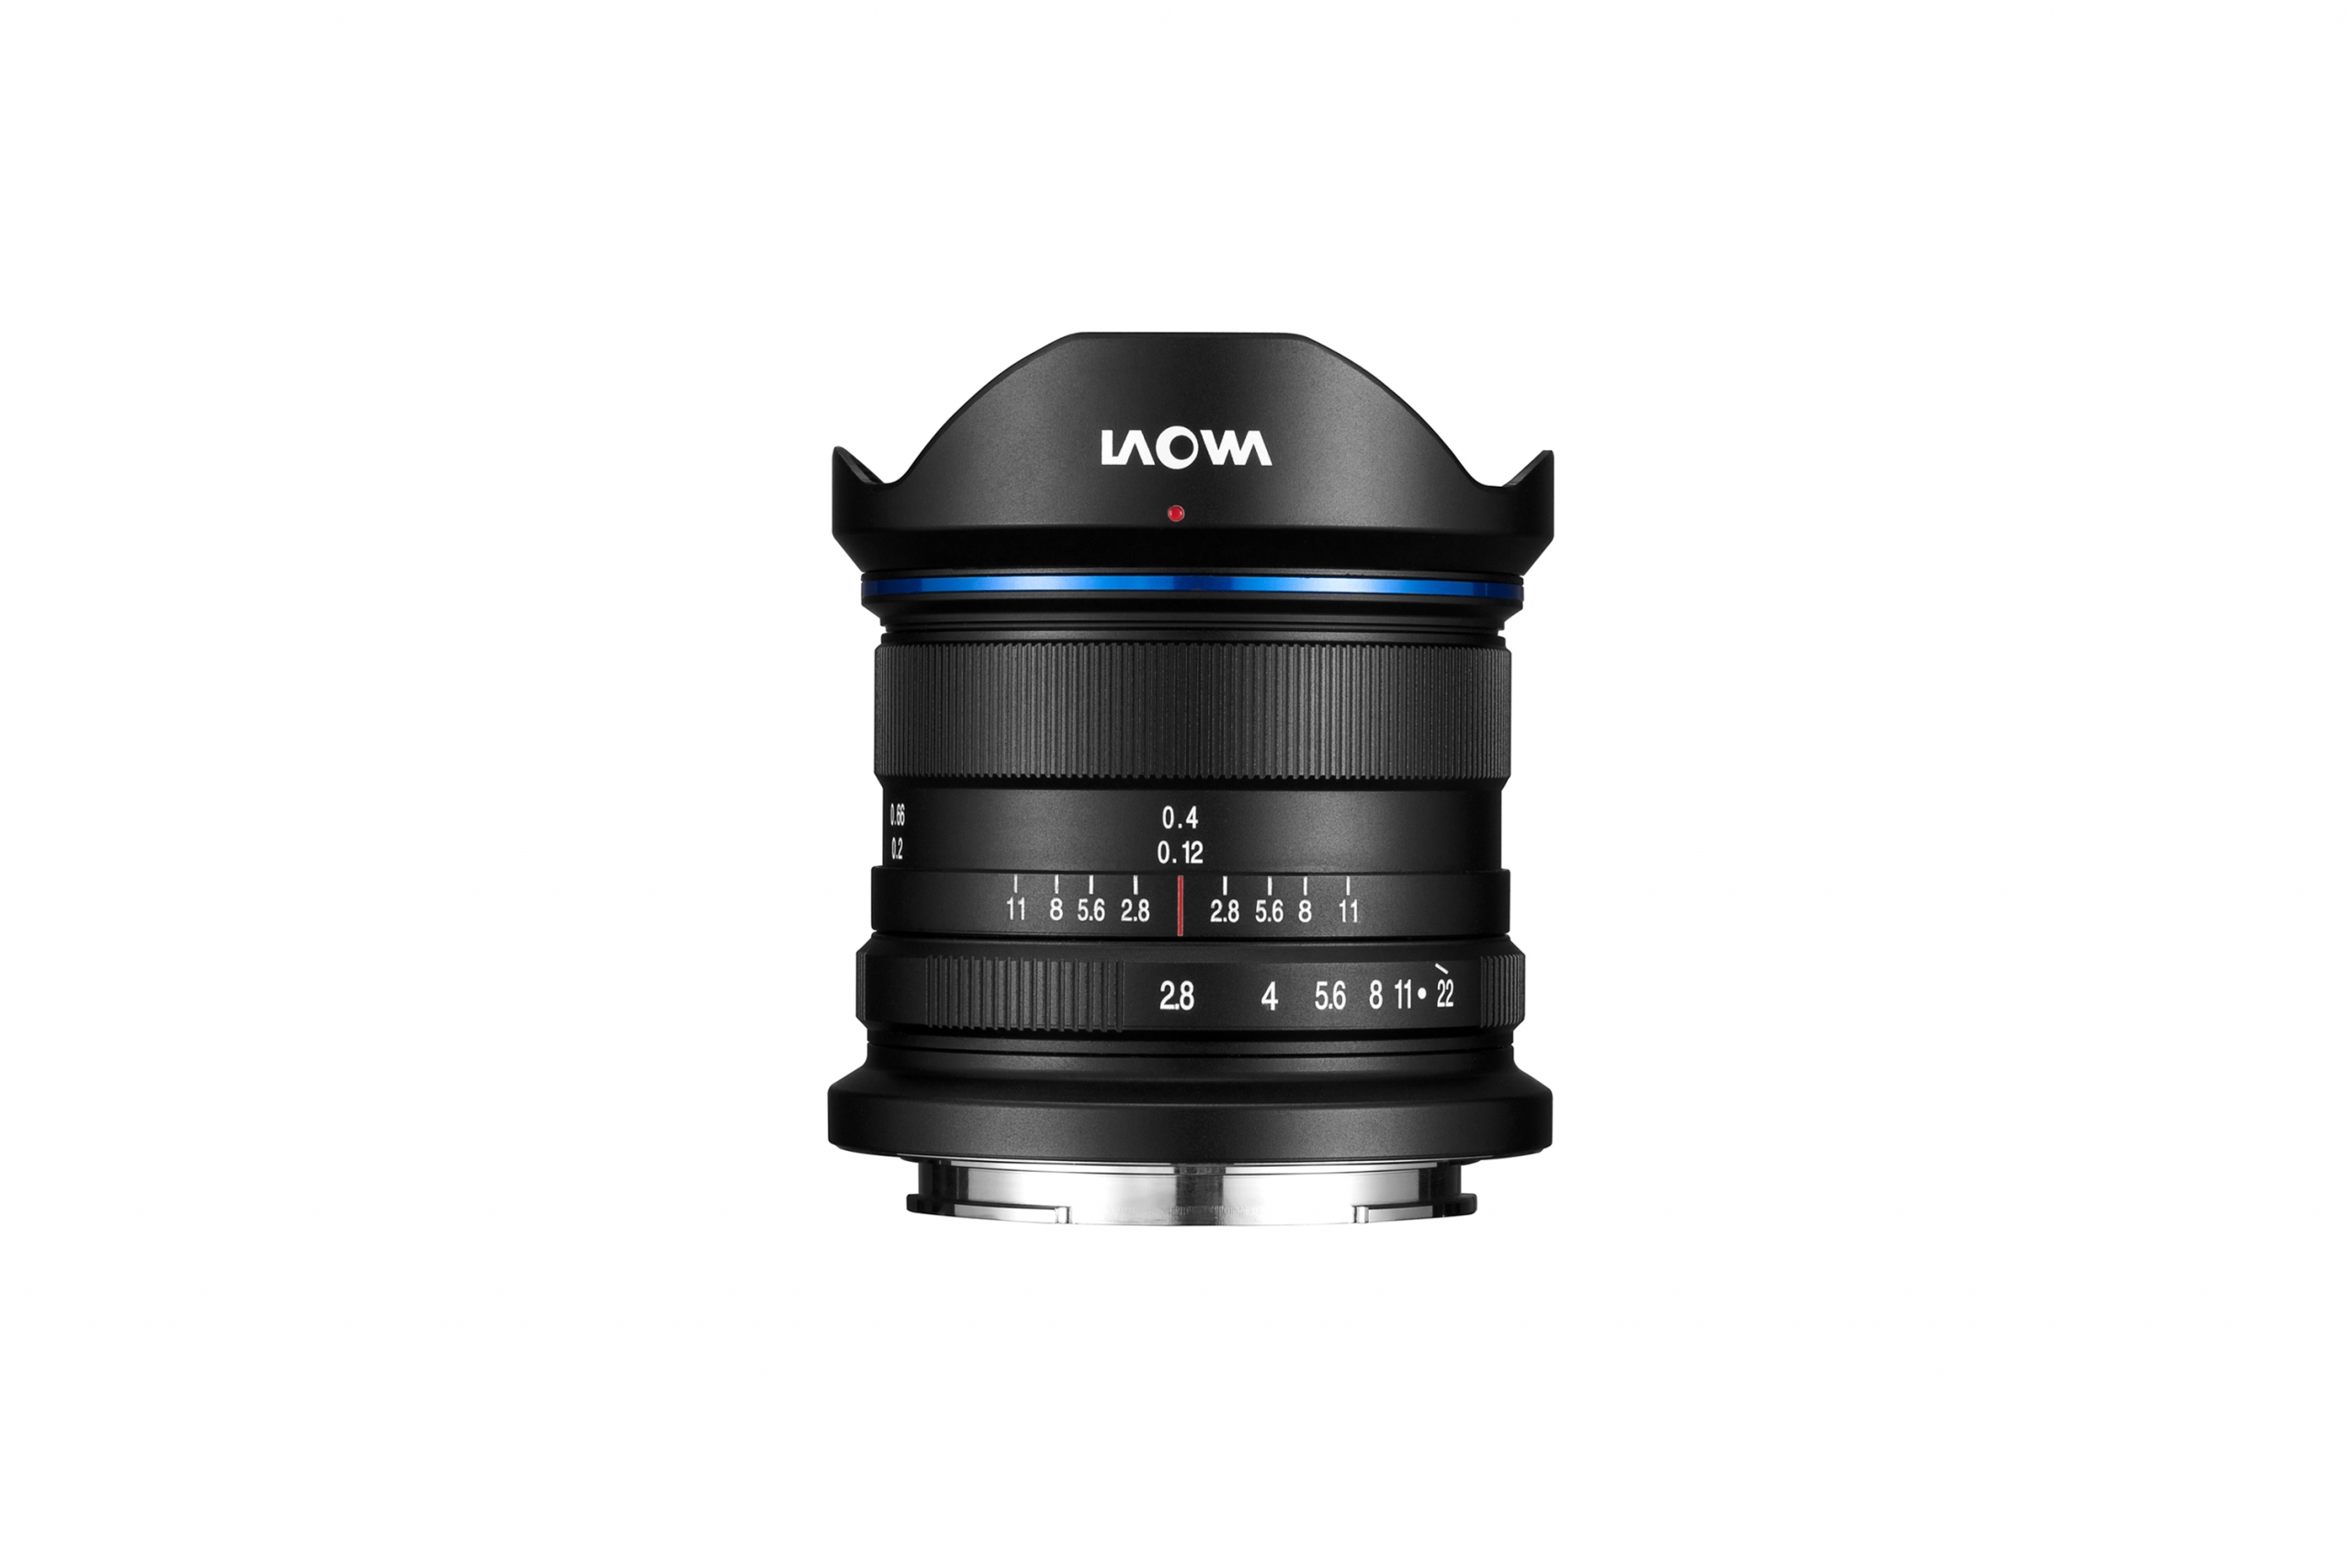 4 additional Laowa lenses for L-mount: 2 wide-angle and 2 macro lenses incl. macro probe